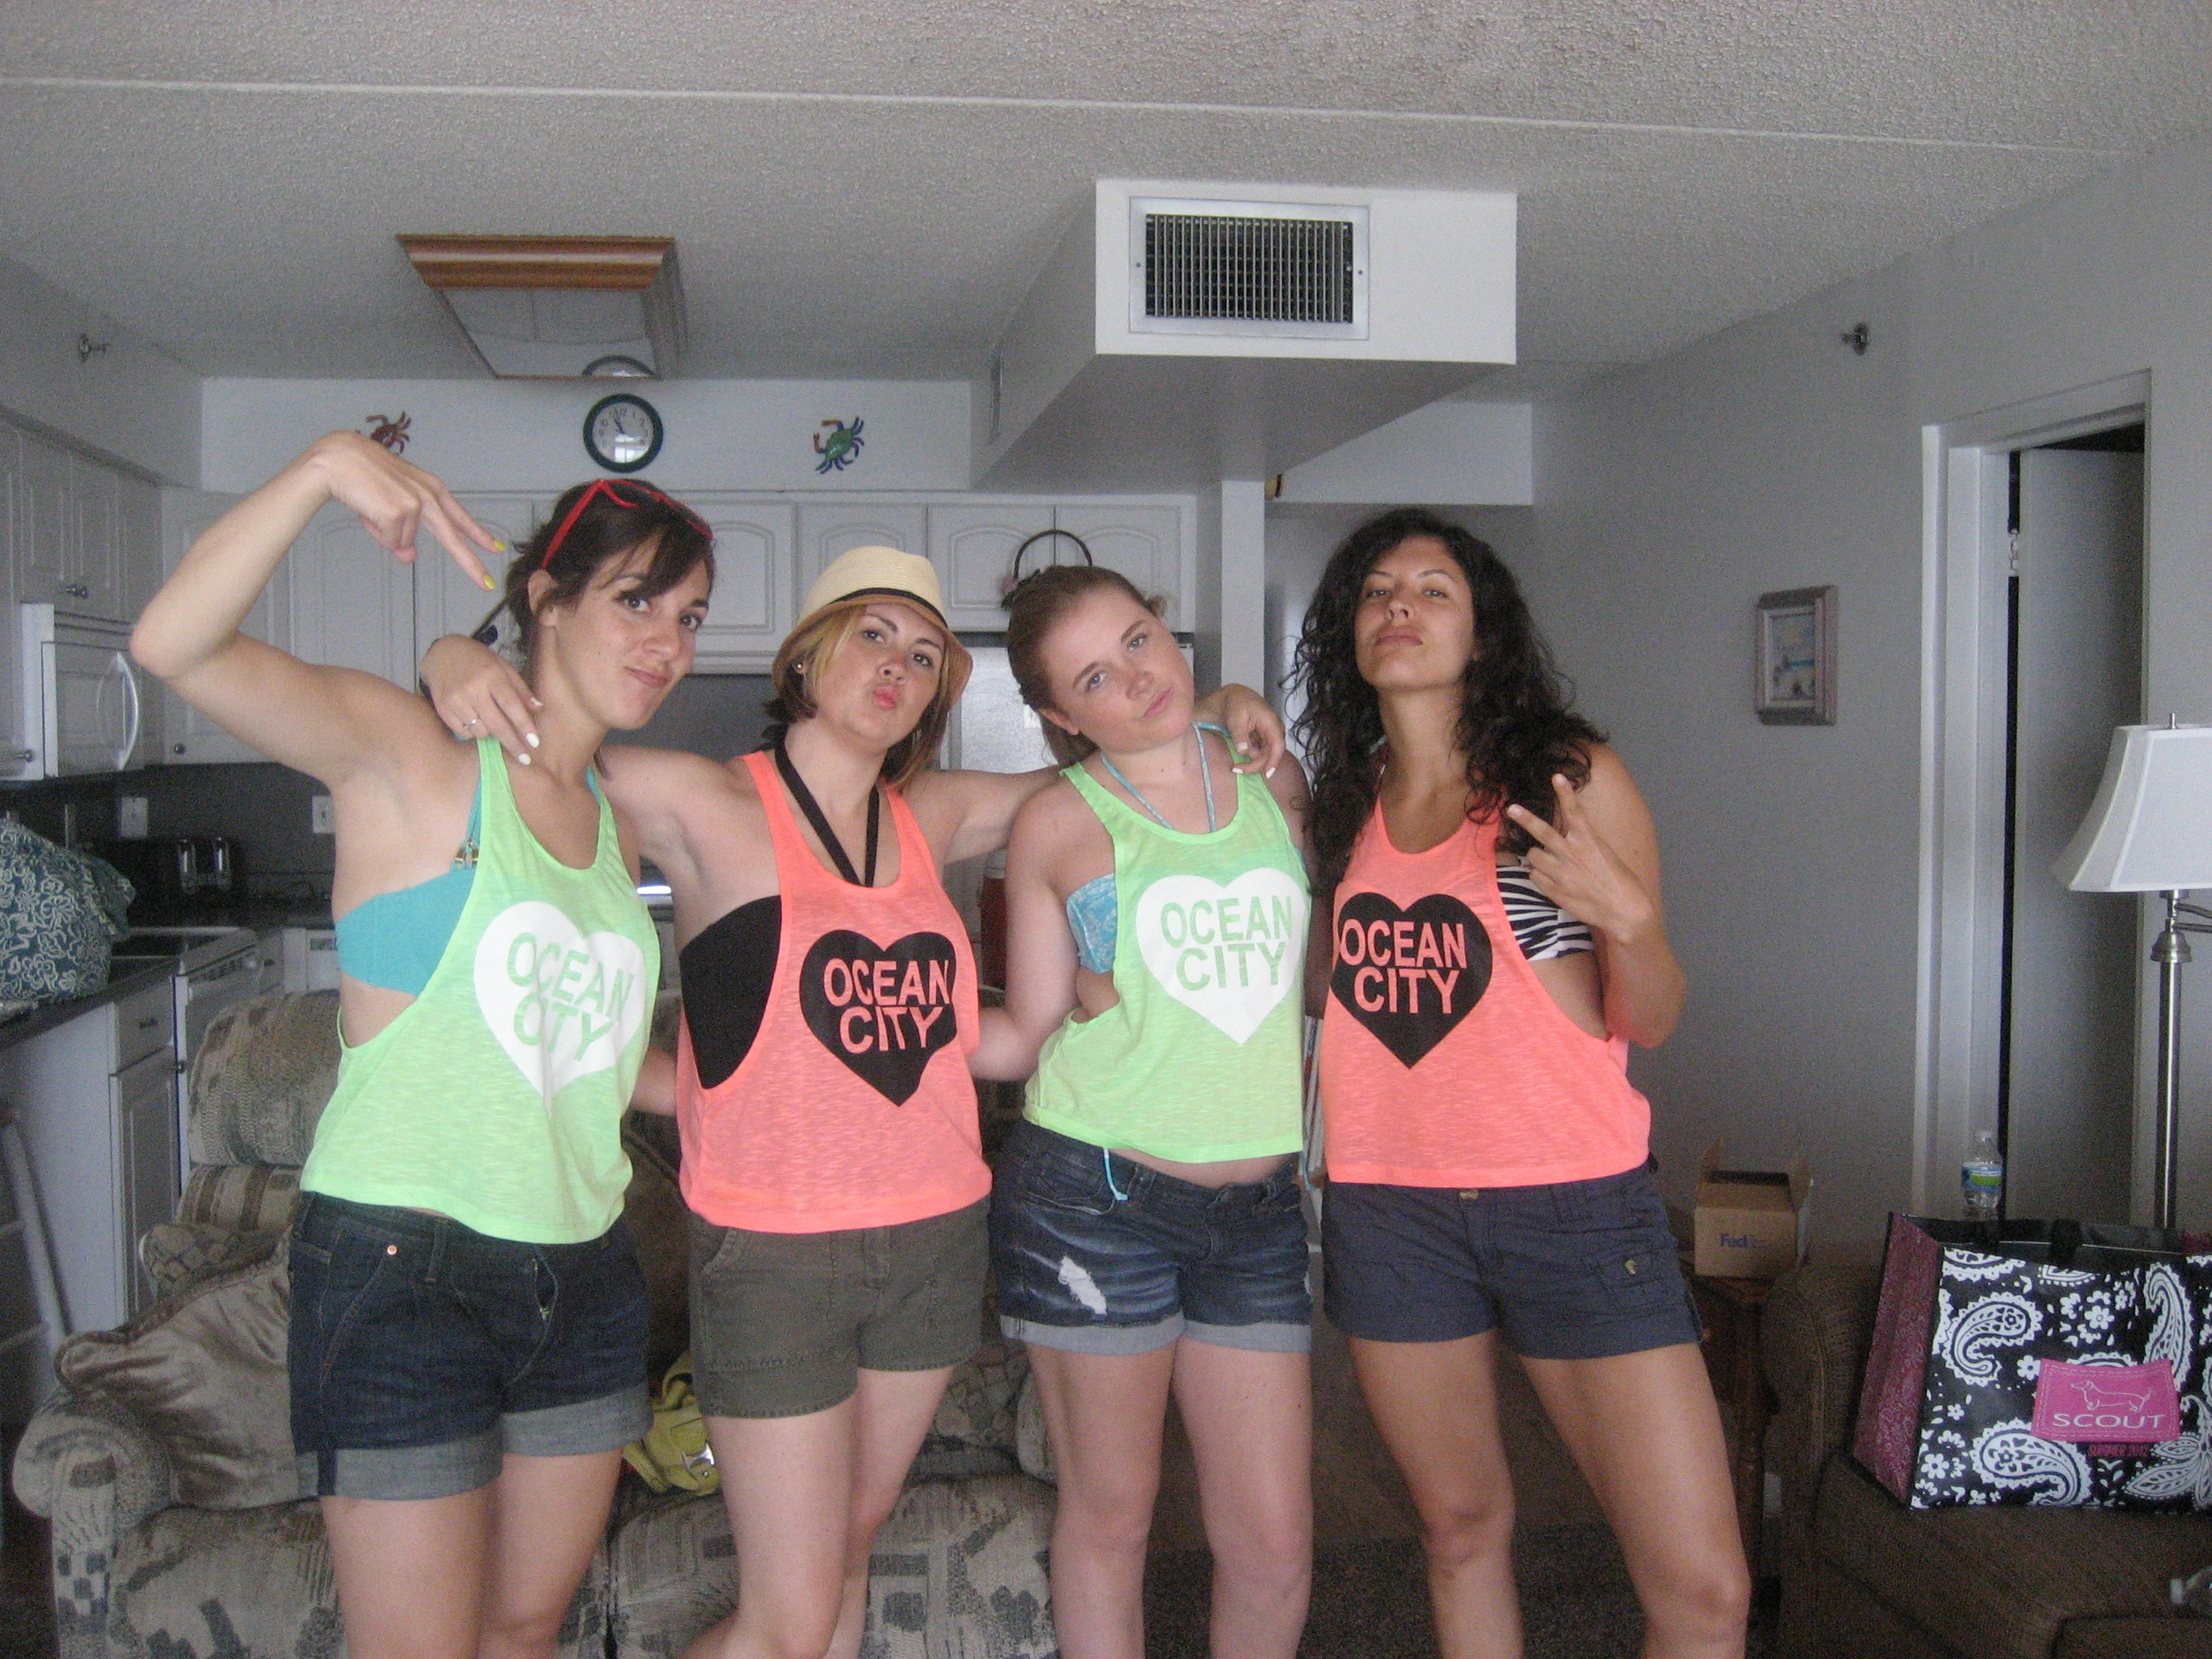 Sunsations OCMD shirt (aka a tiny piece of cheap fabric with giant armholes) -- priceless.